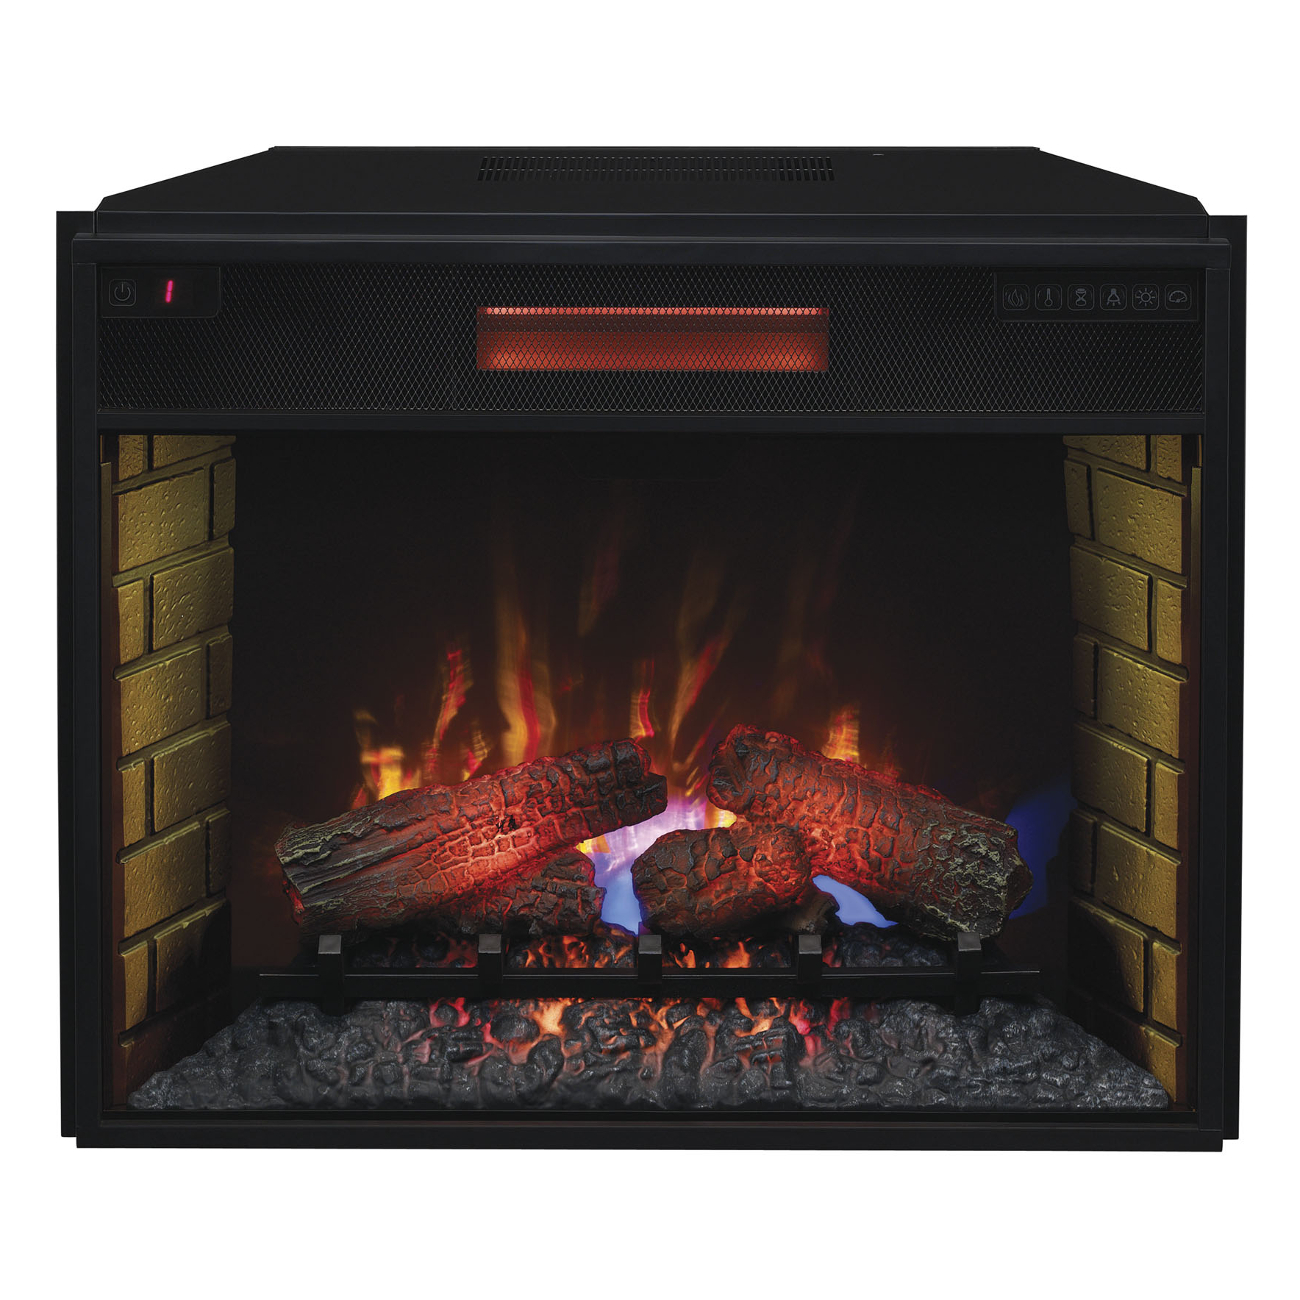 Classic Flame 28-Inch Infrared Electric Fireplace Insert 28II300GRA